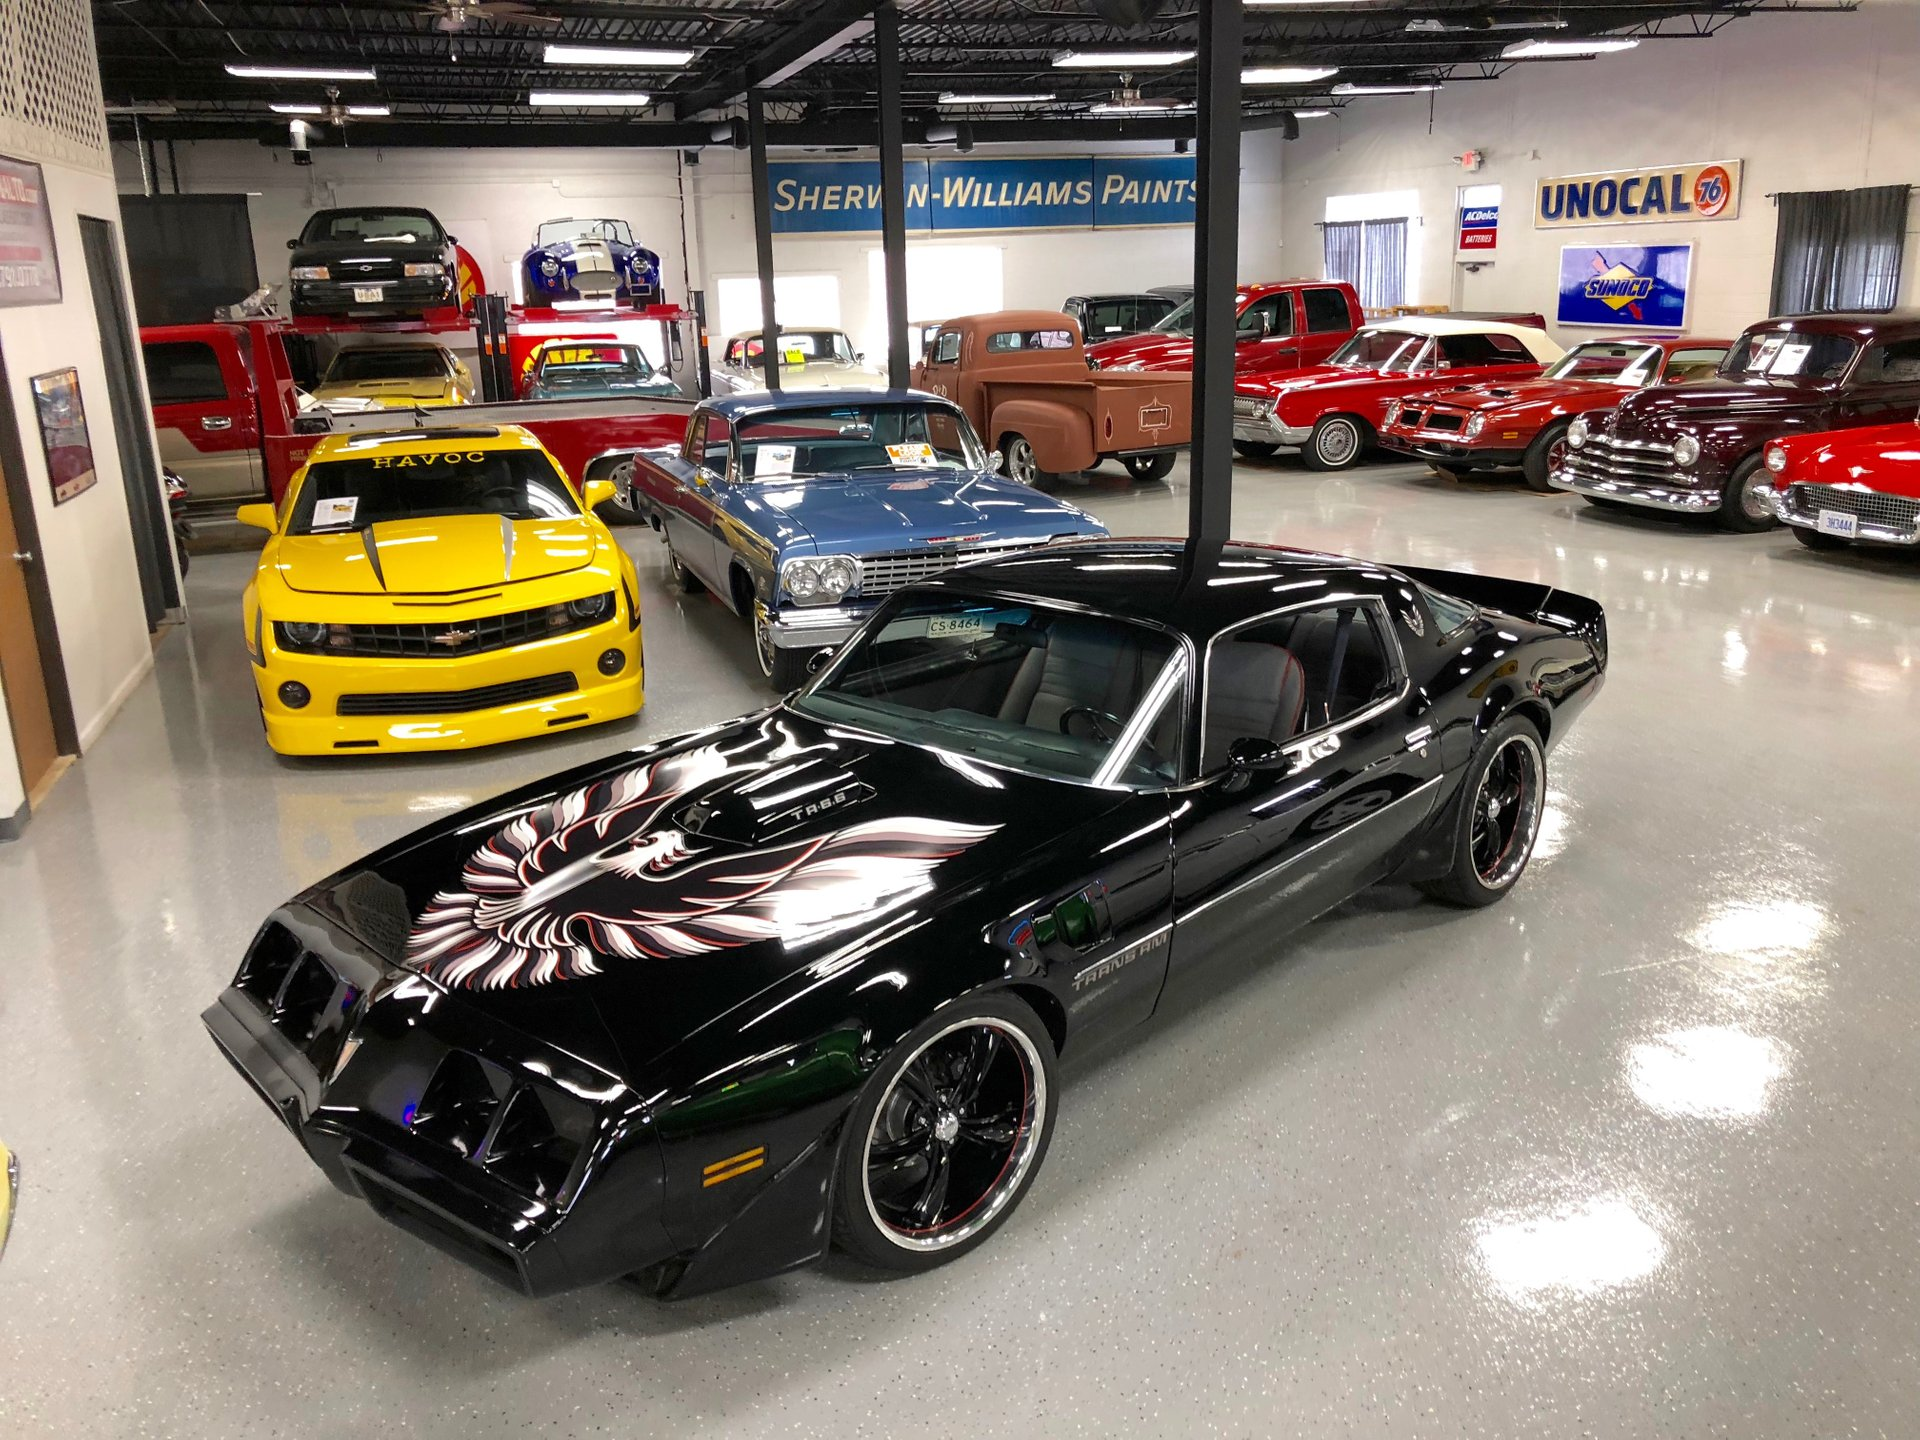 1979 Trans Am Picture 1979 Pontiac Trans Am Showdown Auto Sales Drive Your Dream